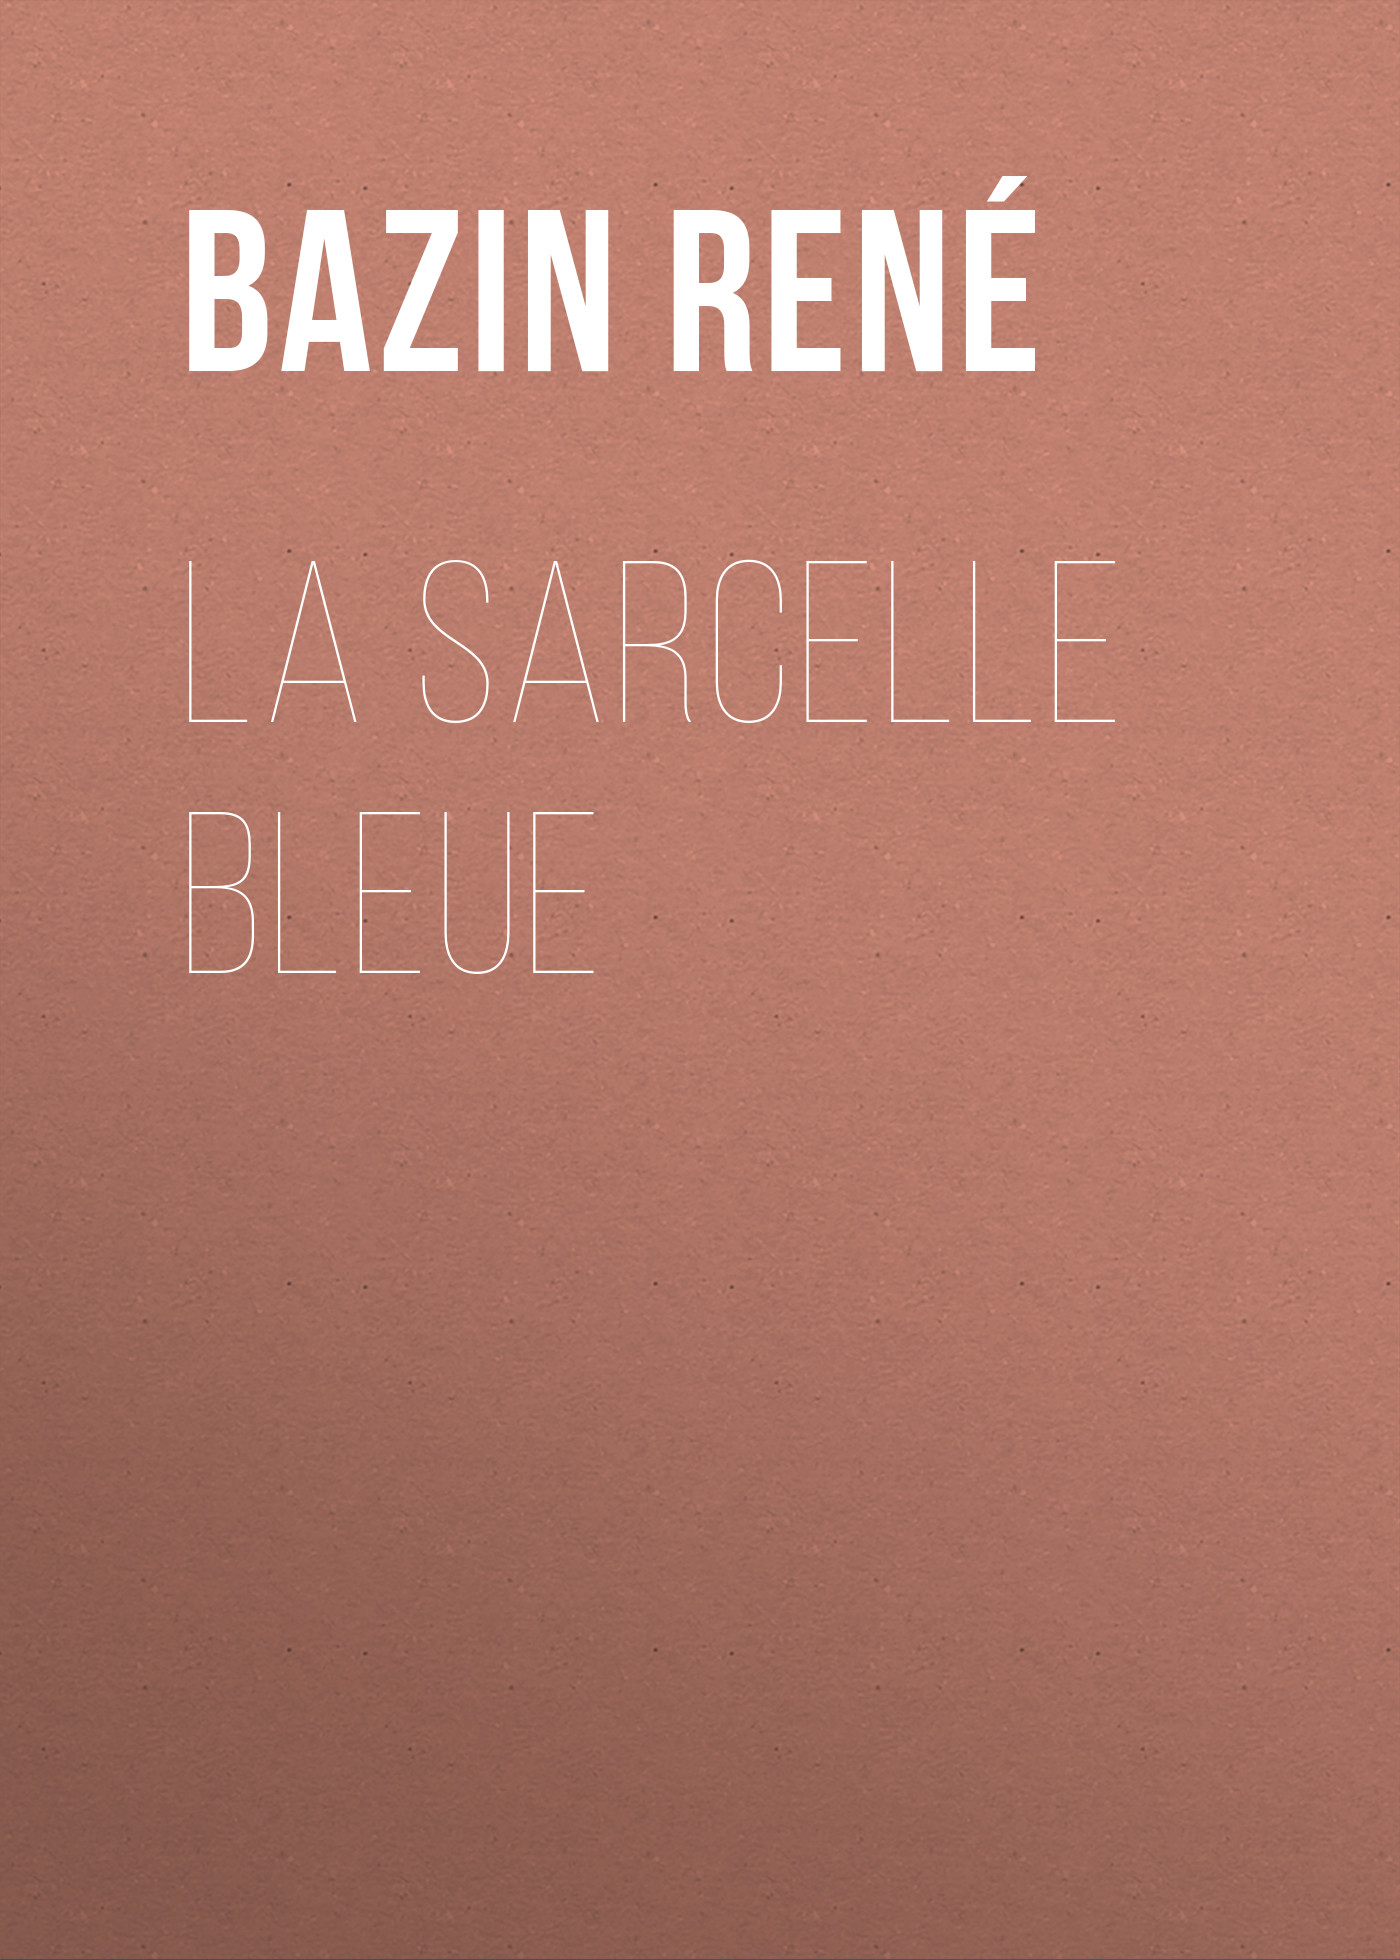 Bazin René La Sarcelle Bleue bazin rené the children of alsace les oberlés